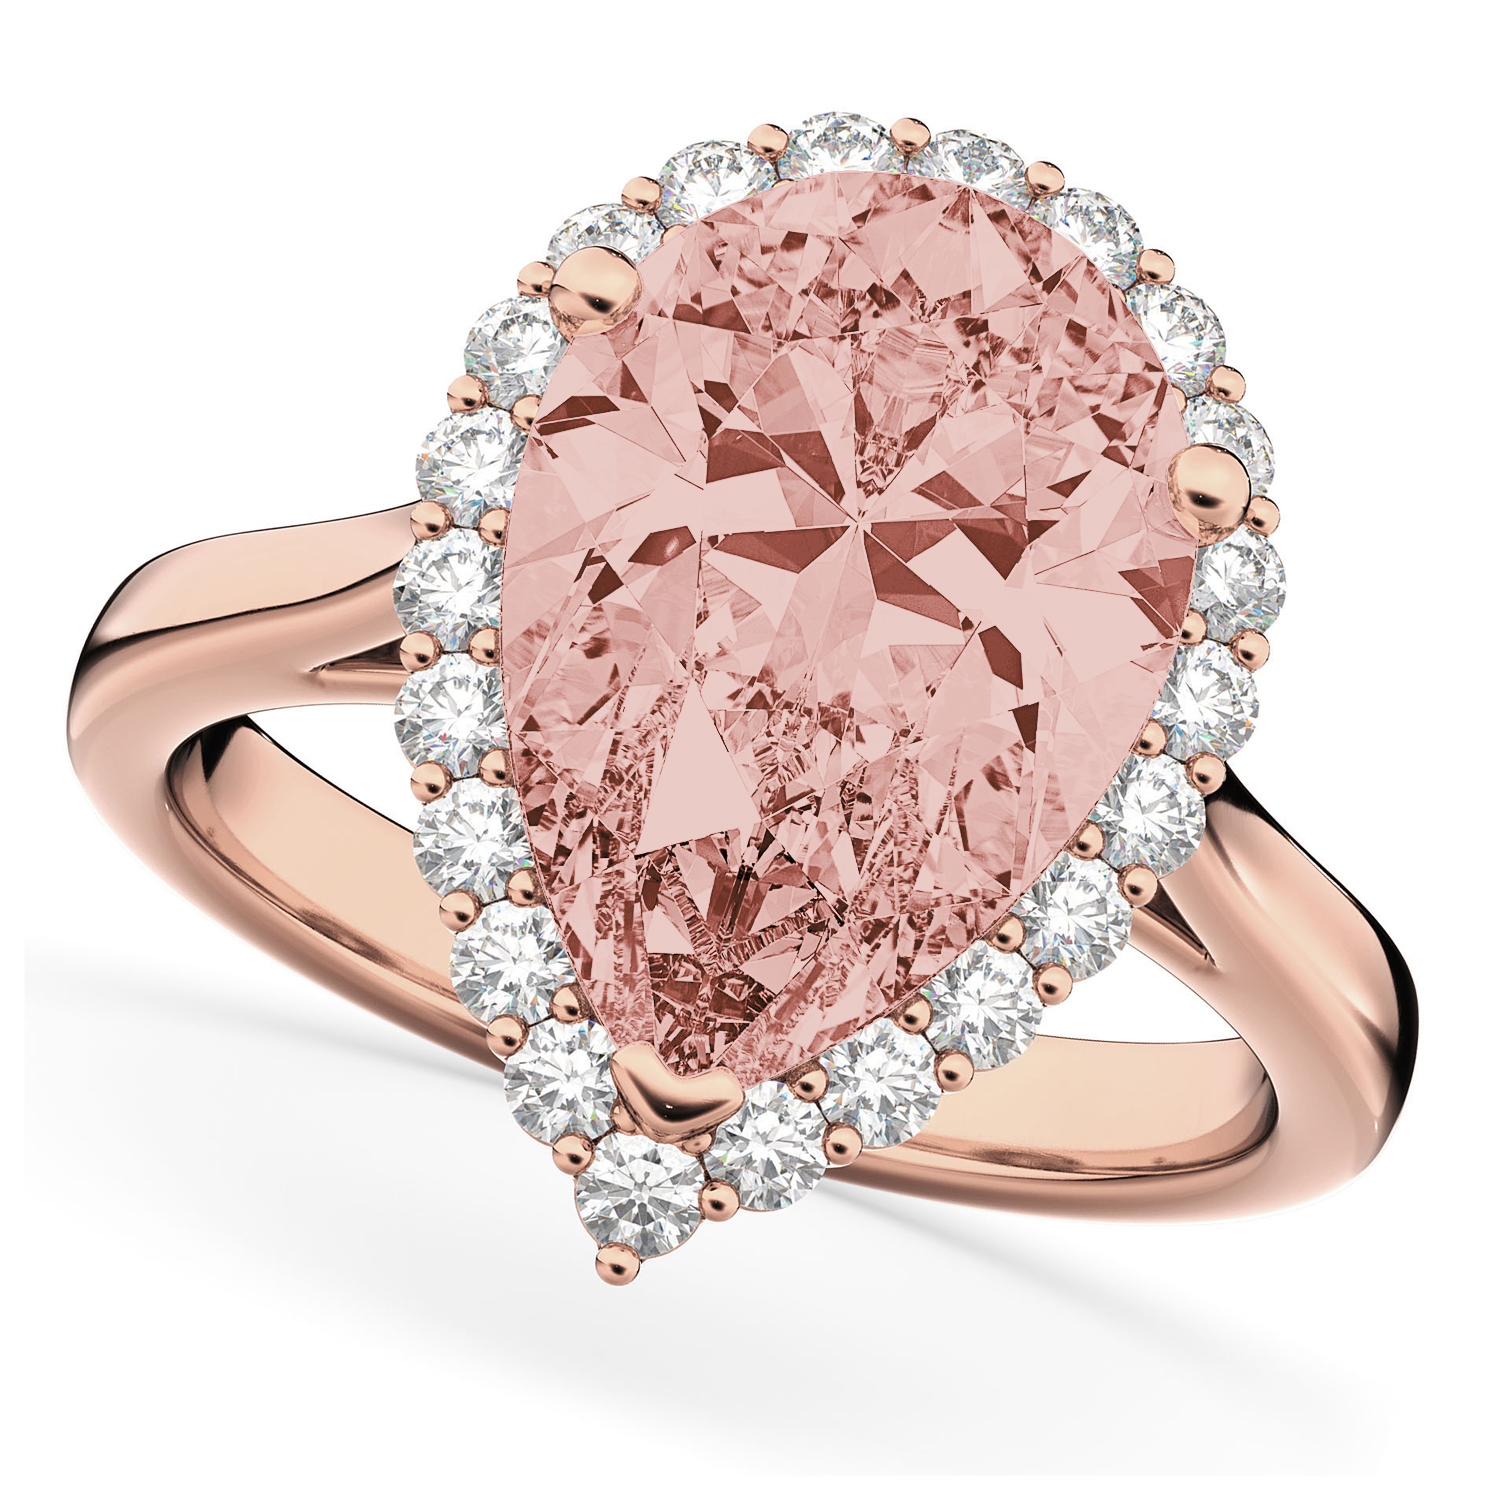 Pear Cut Halo Morganite & Diamond Engagement Ring 14K Rose Gold 4.74 ...